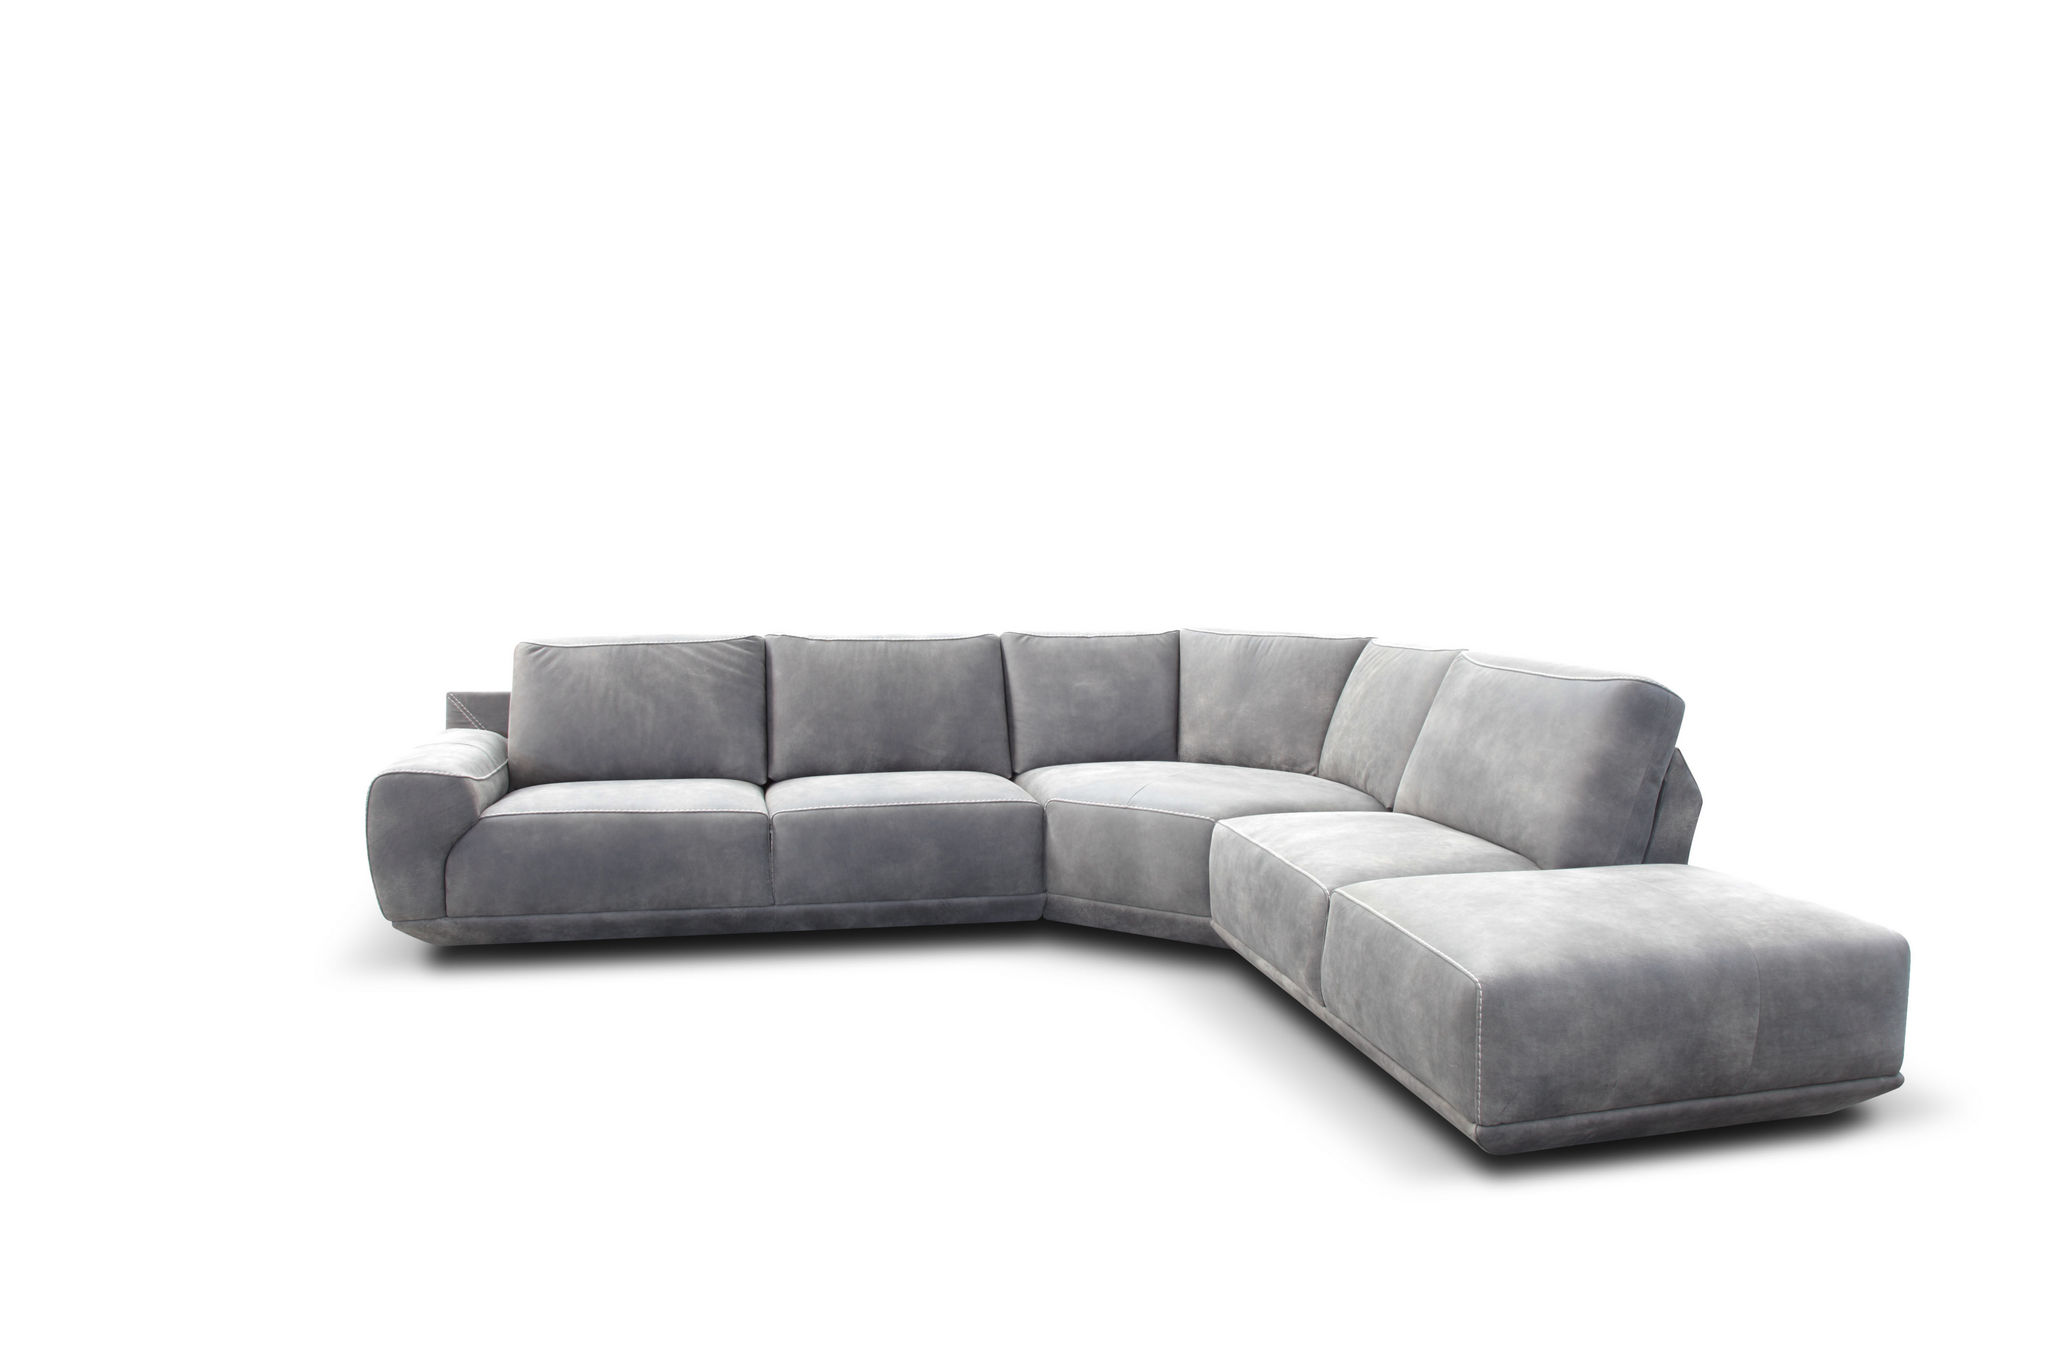 Bracci Artu' sectional